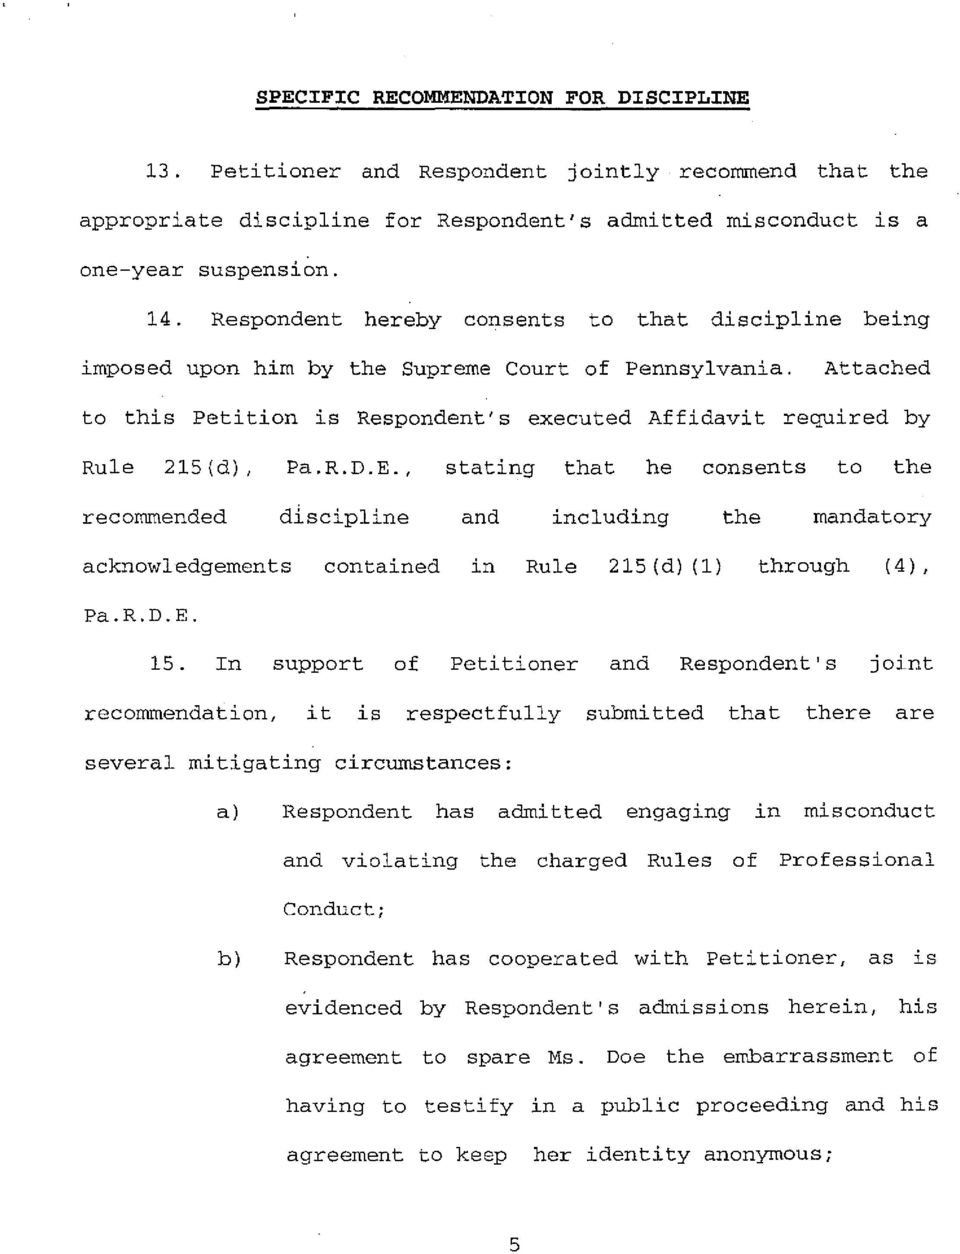 E., stating that he consents to the recommended discipline and including the mandatory acknowledgements contained in Rule 215(d) (1) Pa.R.D.E. through ( 4) ' 15.